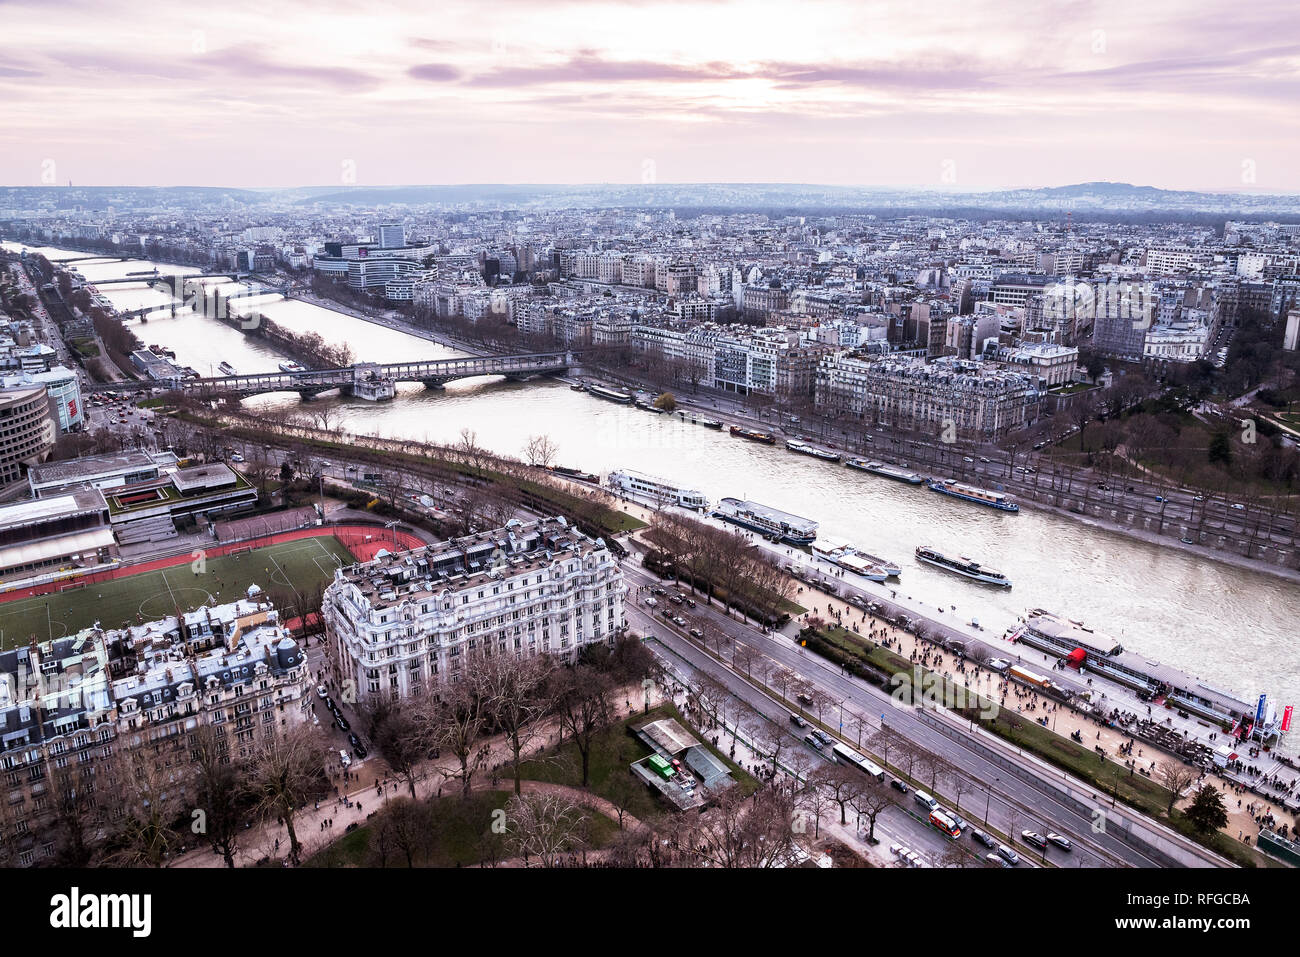 Panoramic view of Paris from Eiffel tower, France Stock Photo